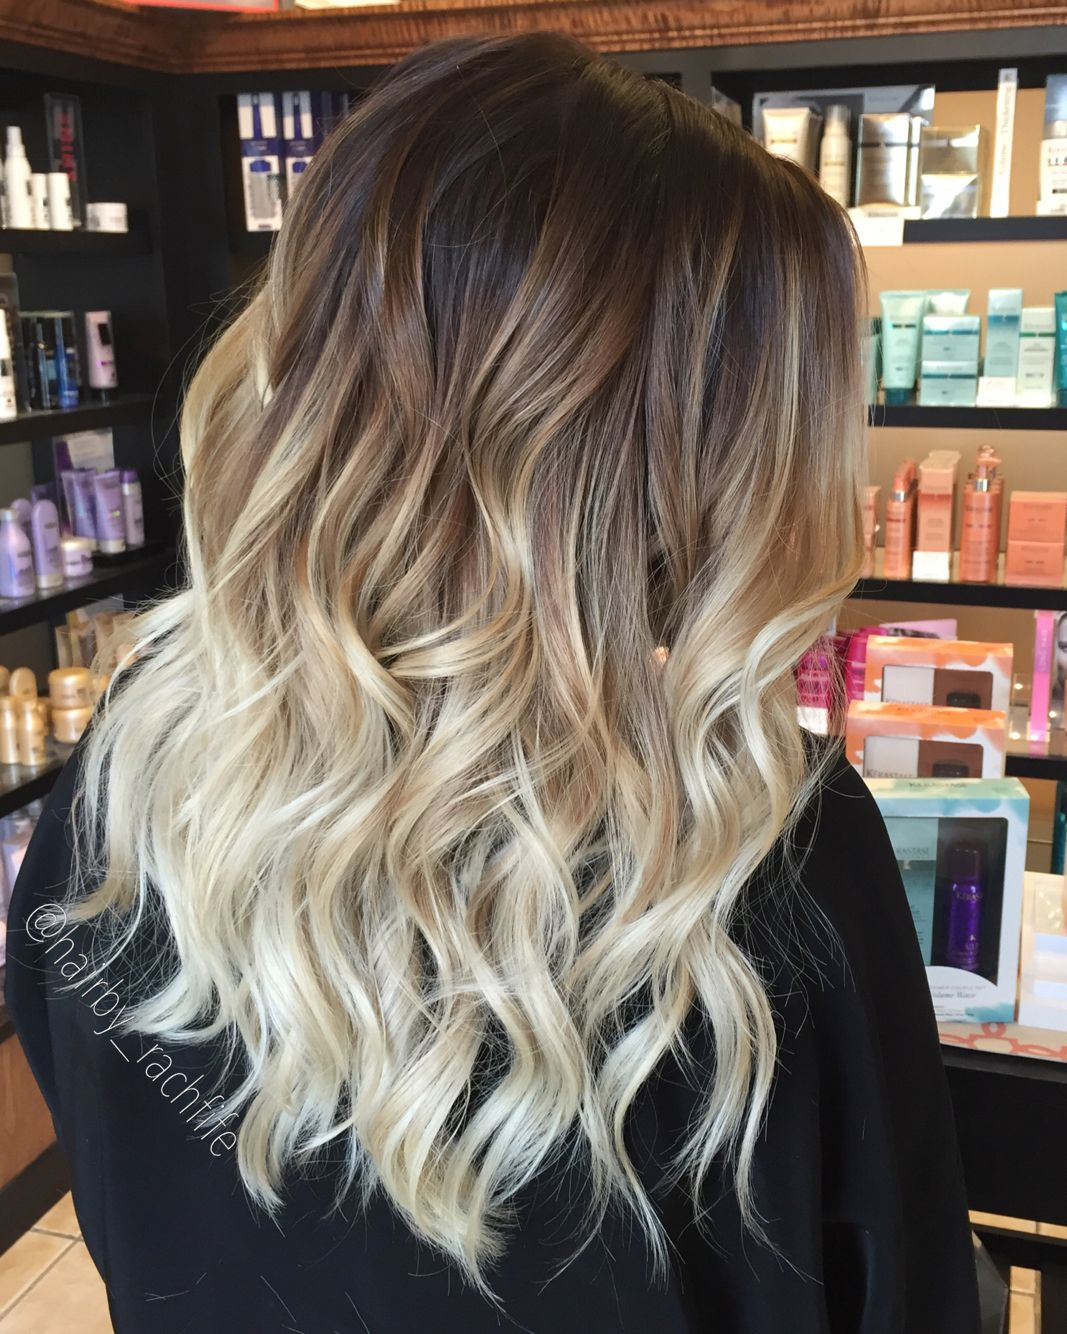 50 amazing blonde balayage haircolor hair ideas pinterest blonde balayage balayage and. Black Bedroom Furniture Sets. Home Design Ideas